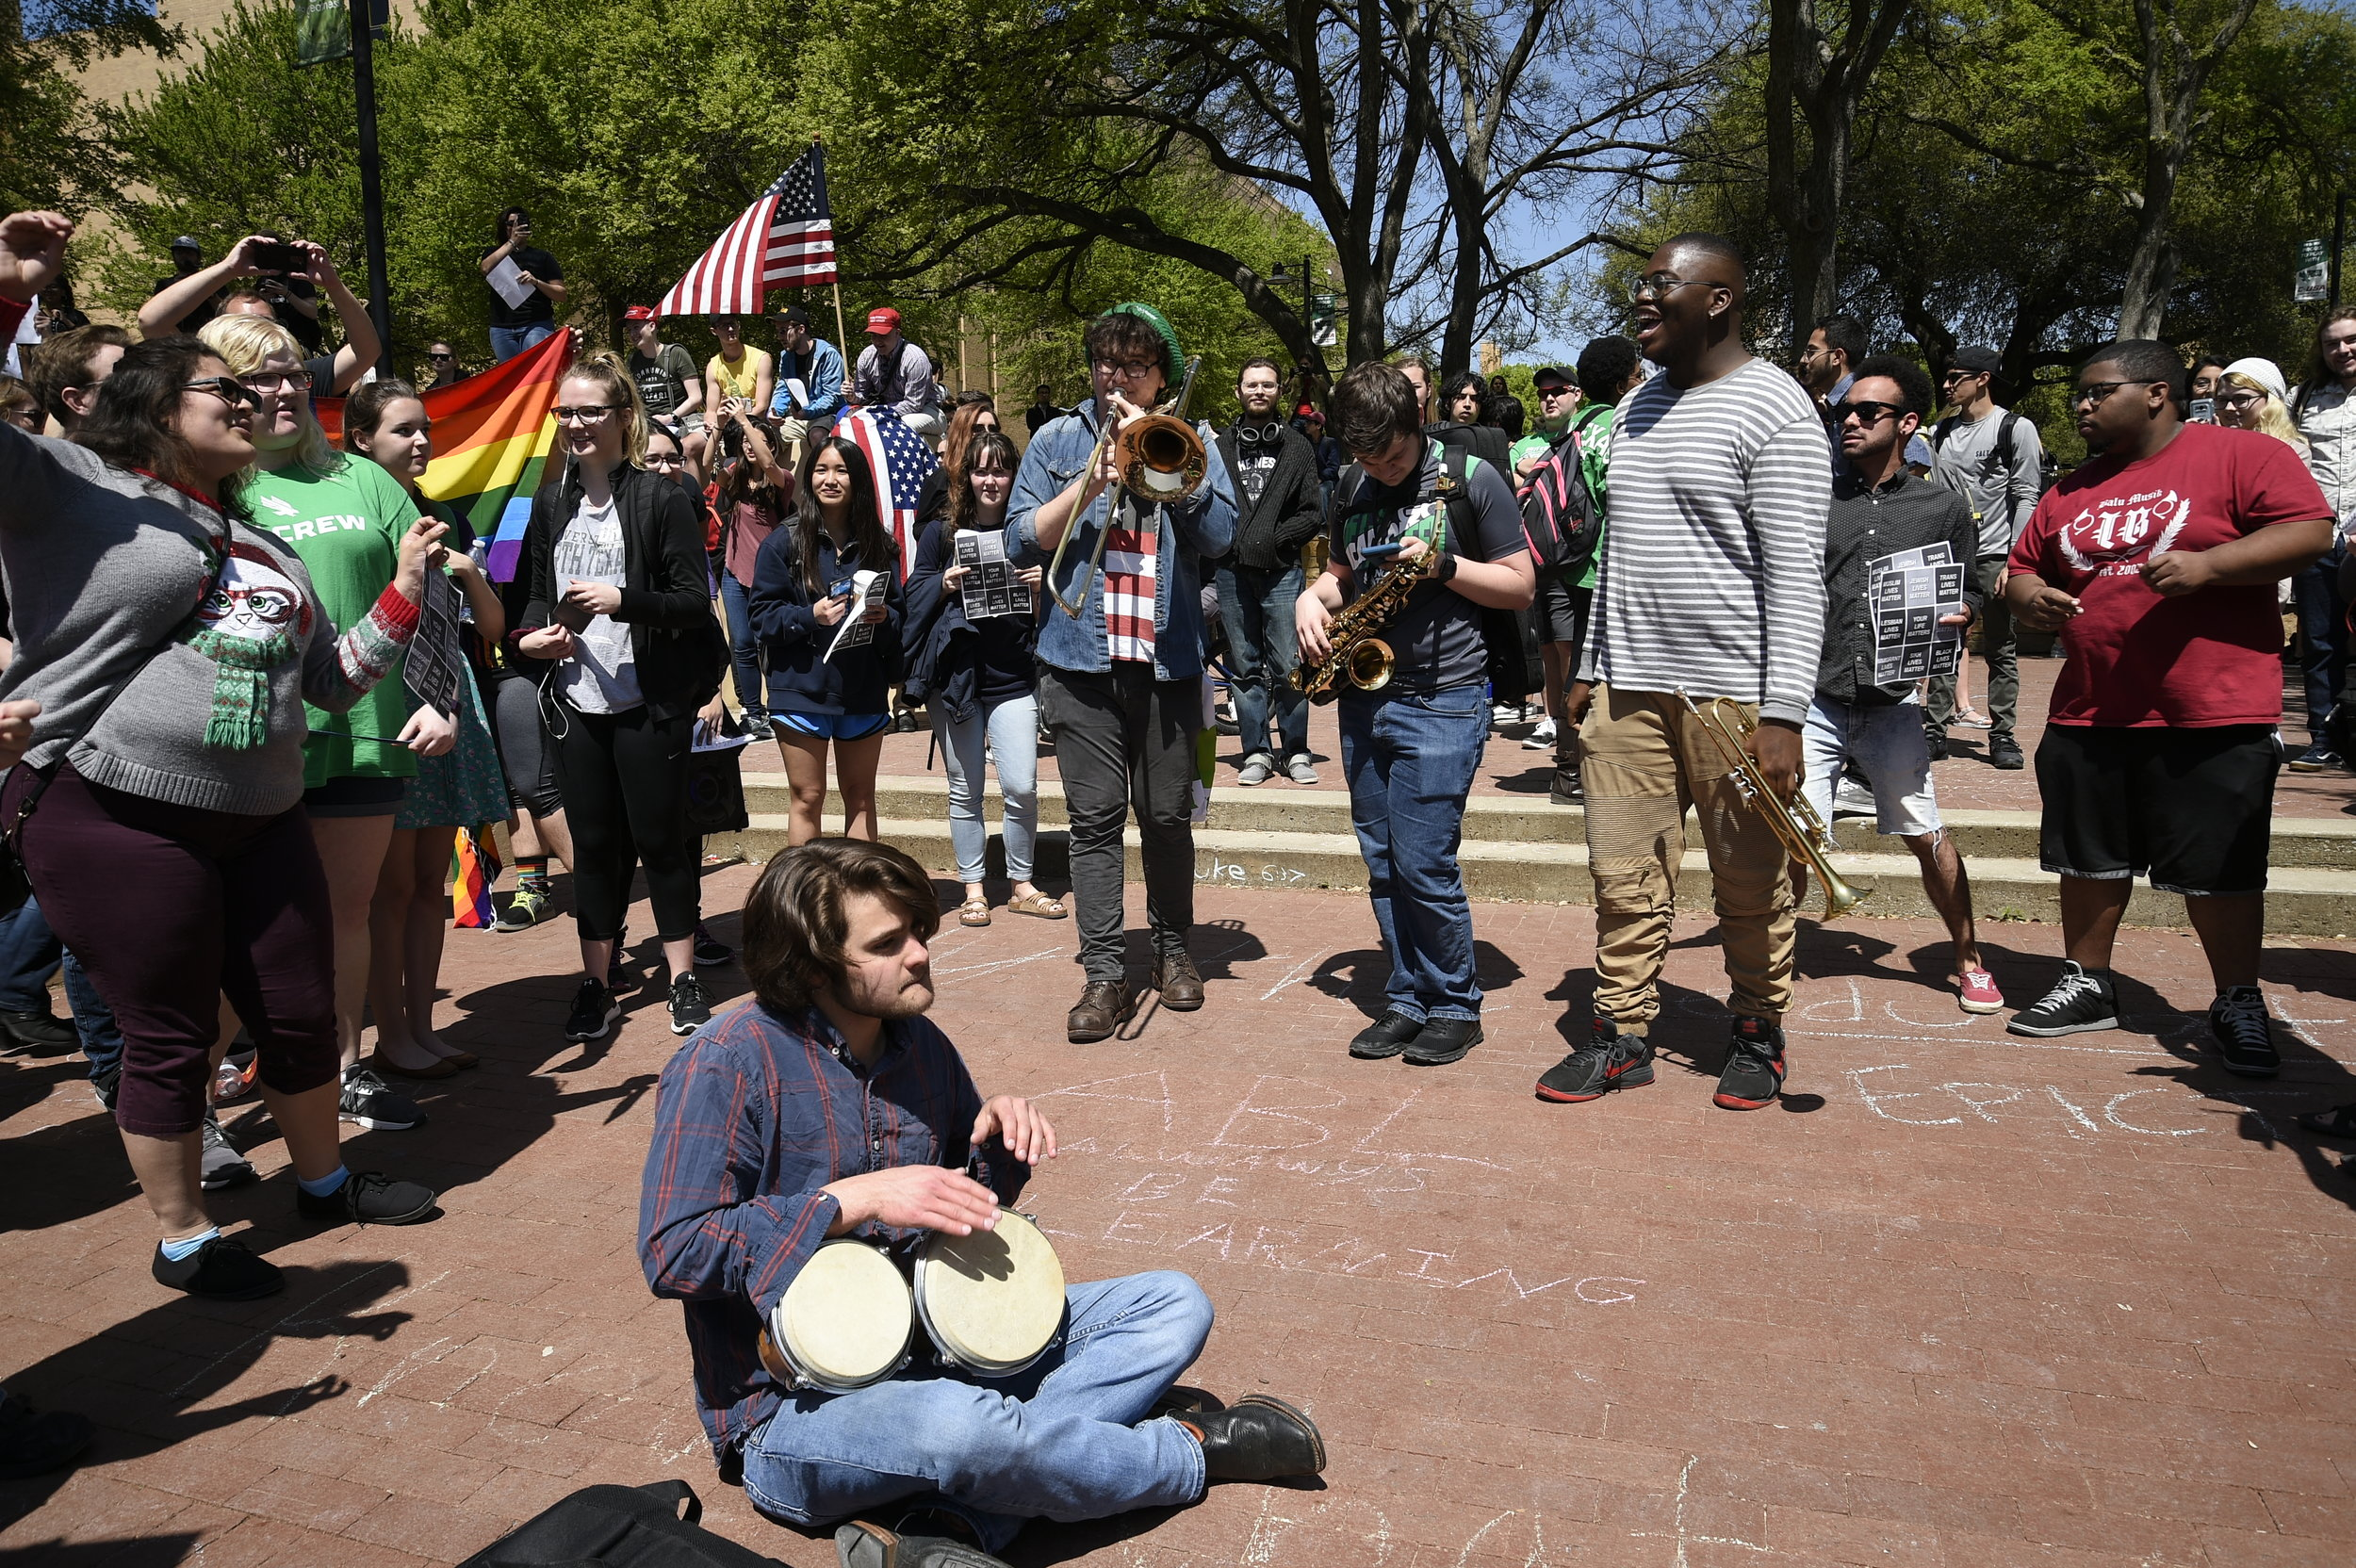 UNT students play music around a circle during a protest.